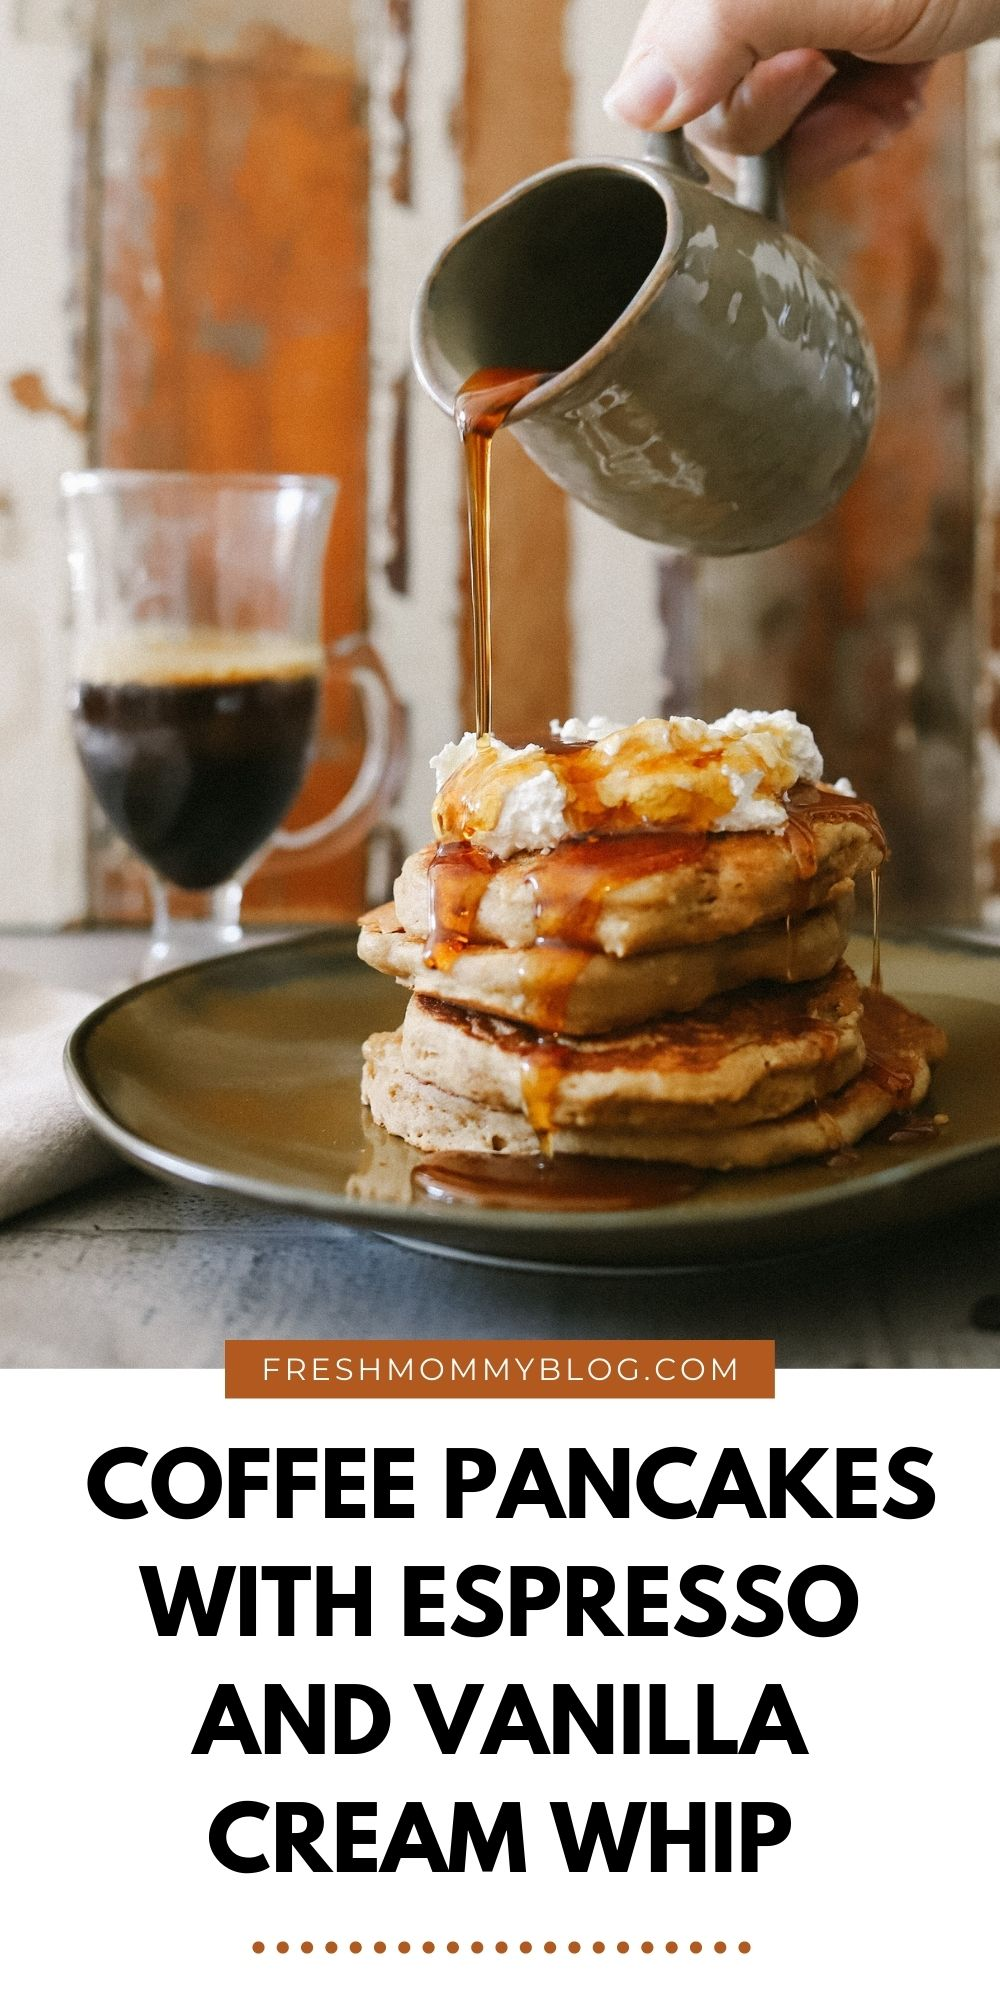 Mouthwatering Coffee Pancakes With Espresso and Vanilla Cream Whip | Coffee Pancakes by popular Florida lifestyle blog, Fresh Mommy Blog: image of syrup being poured onto a stack of coffee pancakes topped with whipped cream.